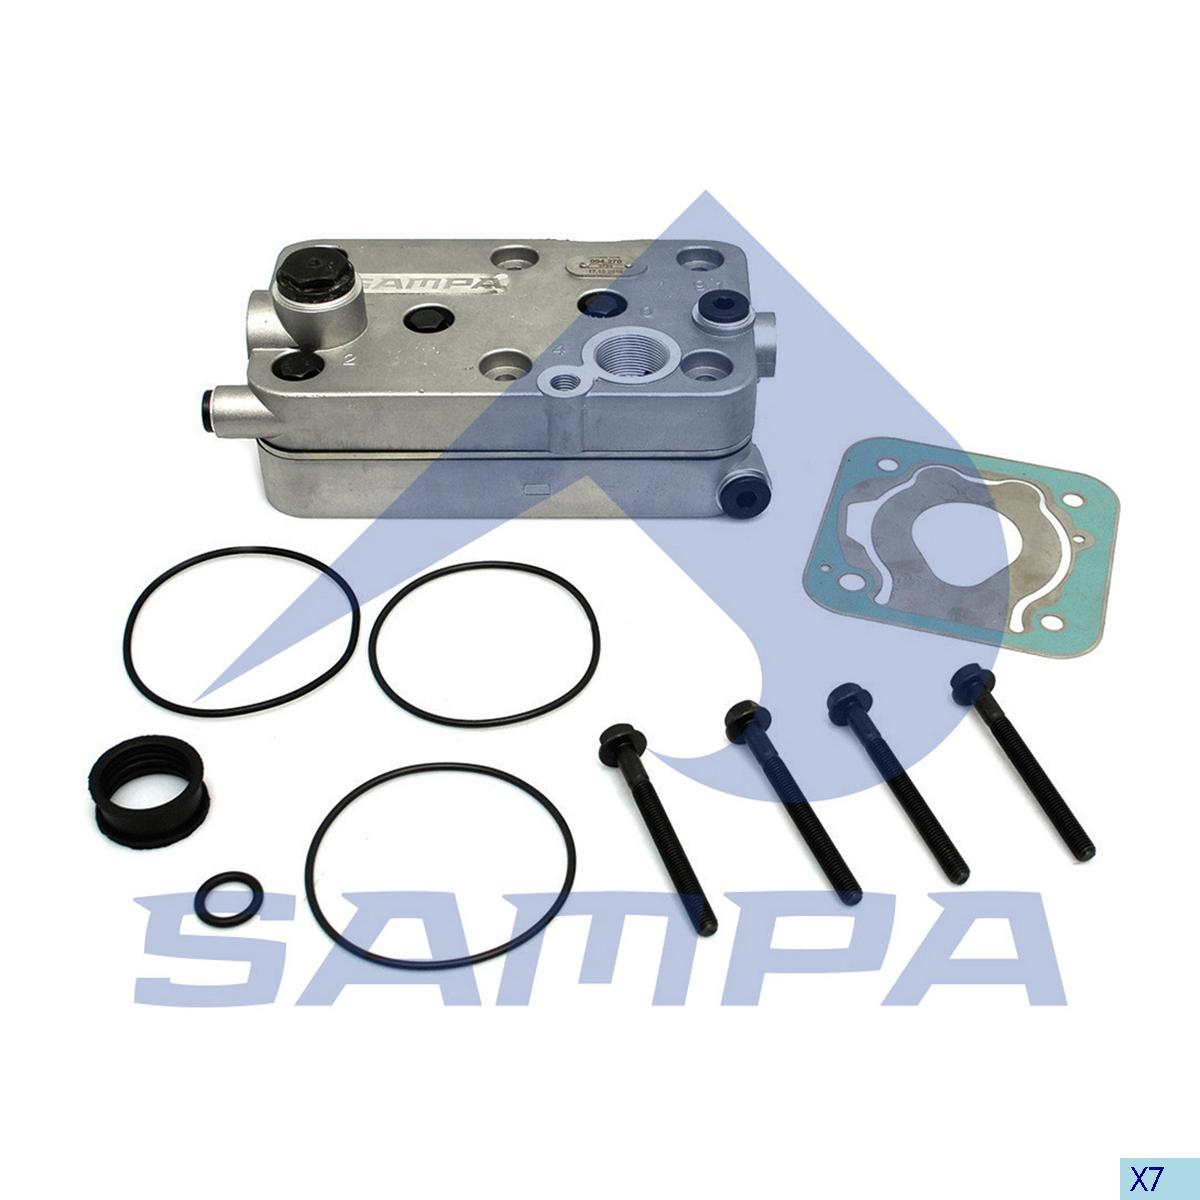 Cylinder Head, Mercedes, Compressed Air System